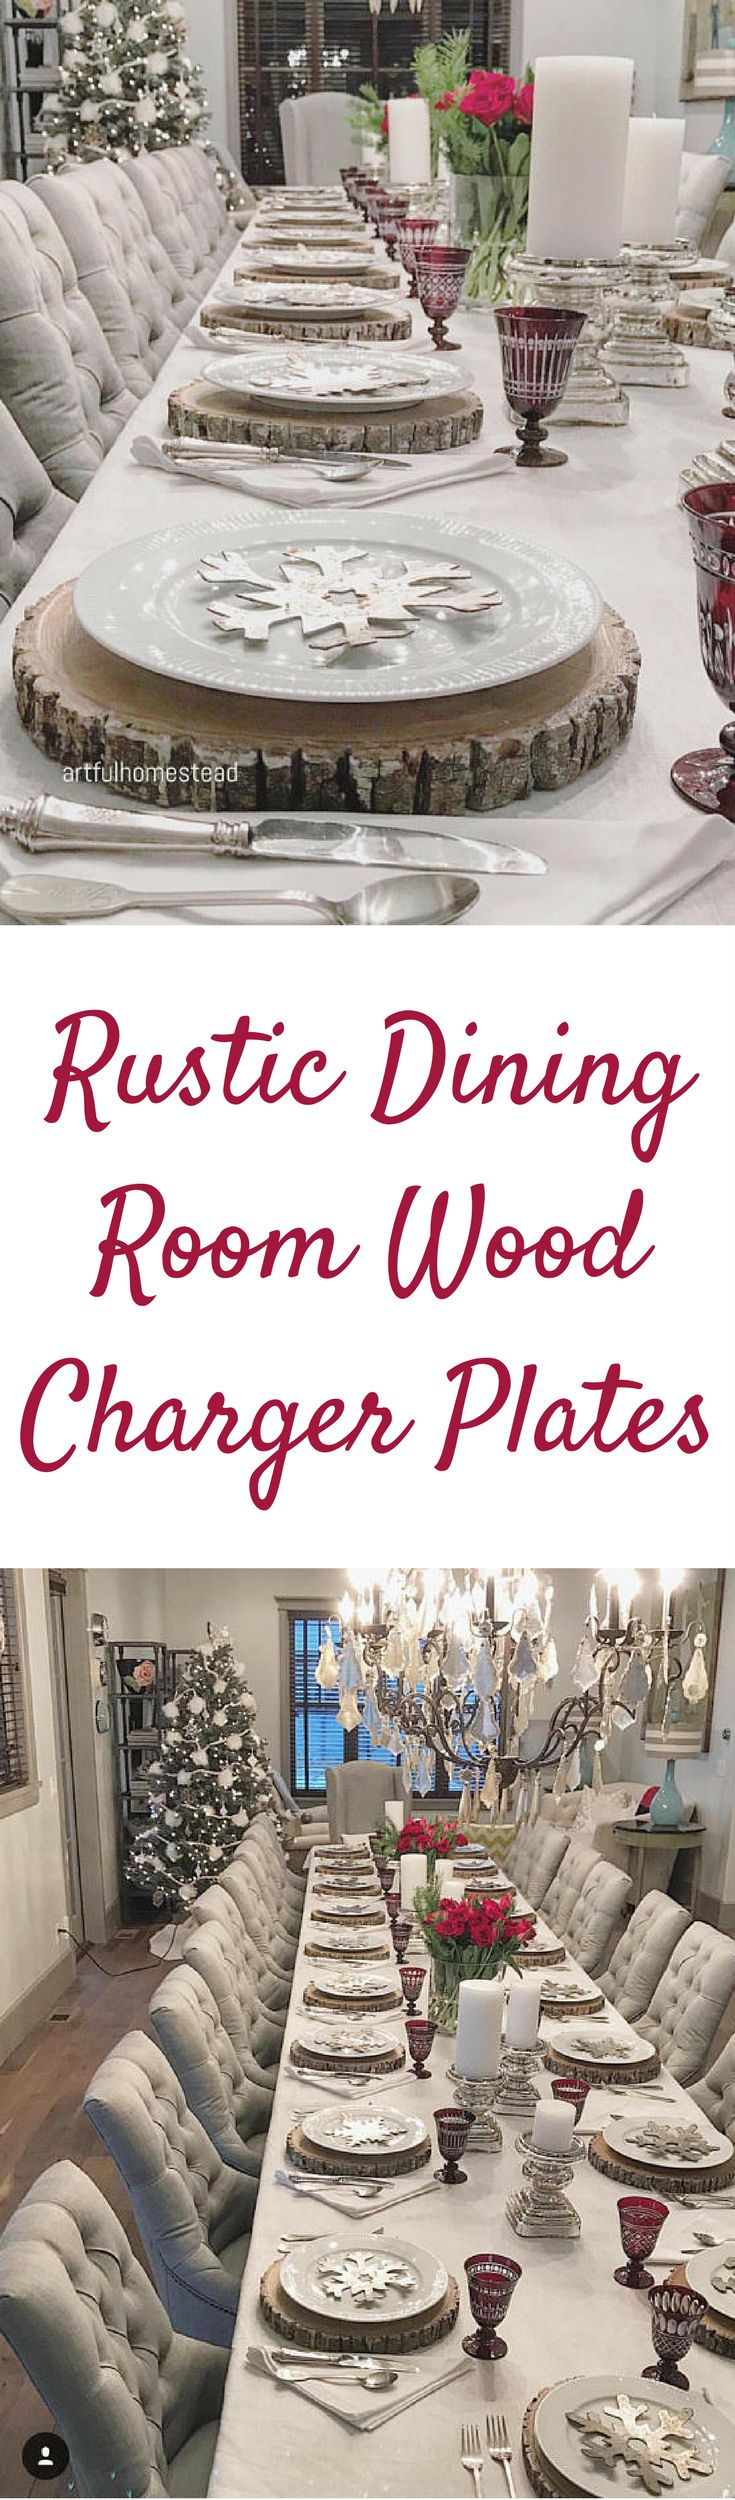 These charger plates are beautiful for a rustic dining room or a rustic wedding reception! #ad #rusticdecor #rusticwedding #rusticfarmhouse #chargerplates #wood #woodwork #plates #diningroom #diningroomideas #diningroomdecor #diningtable